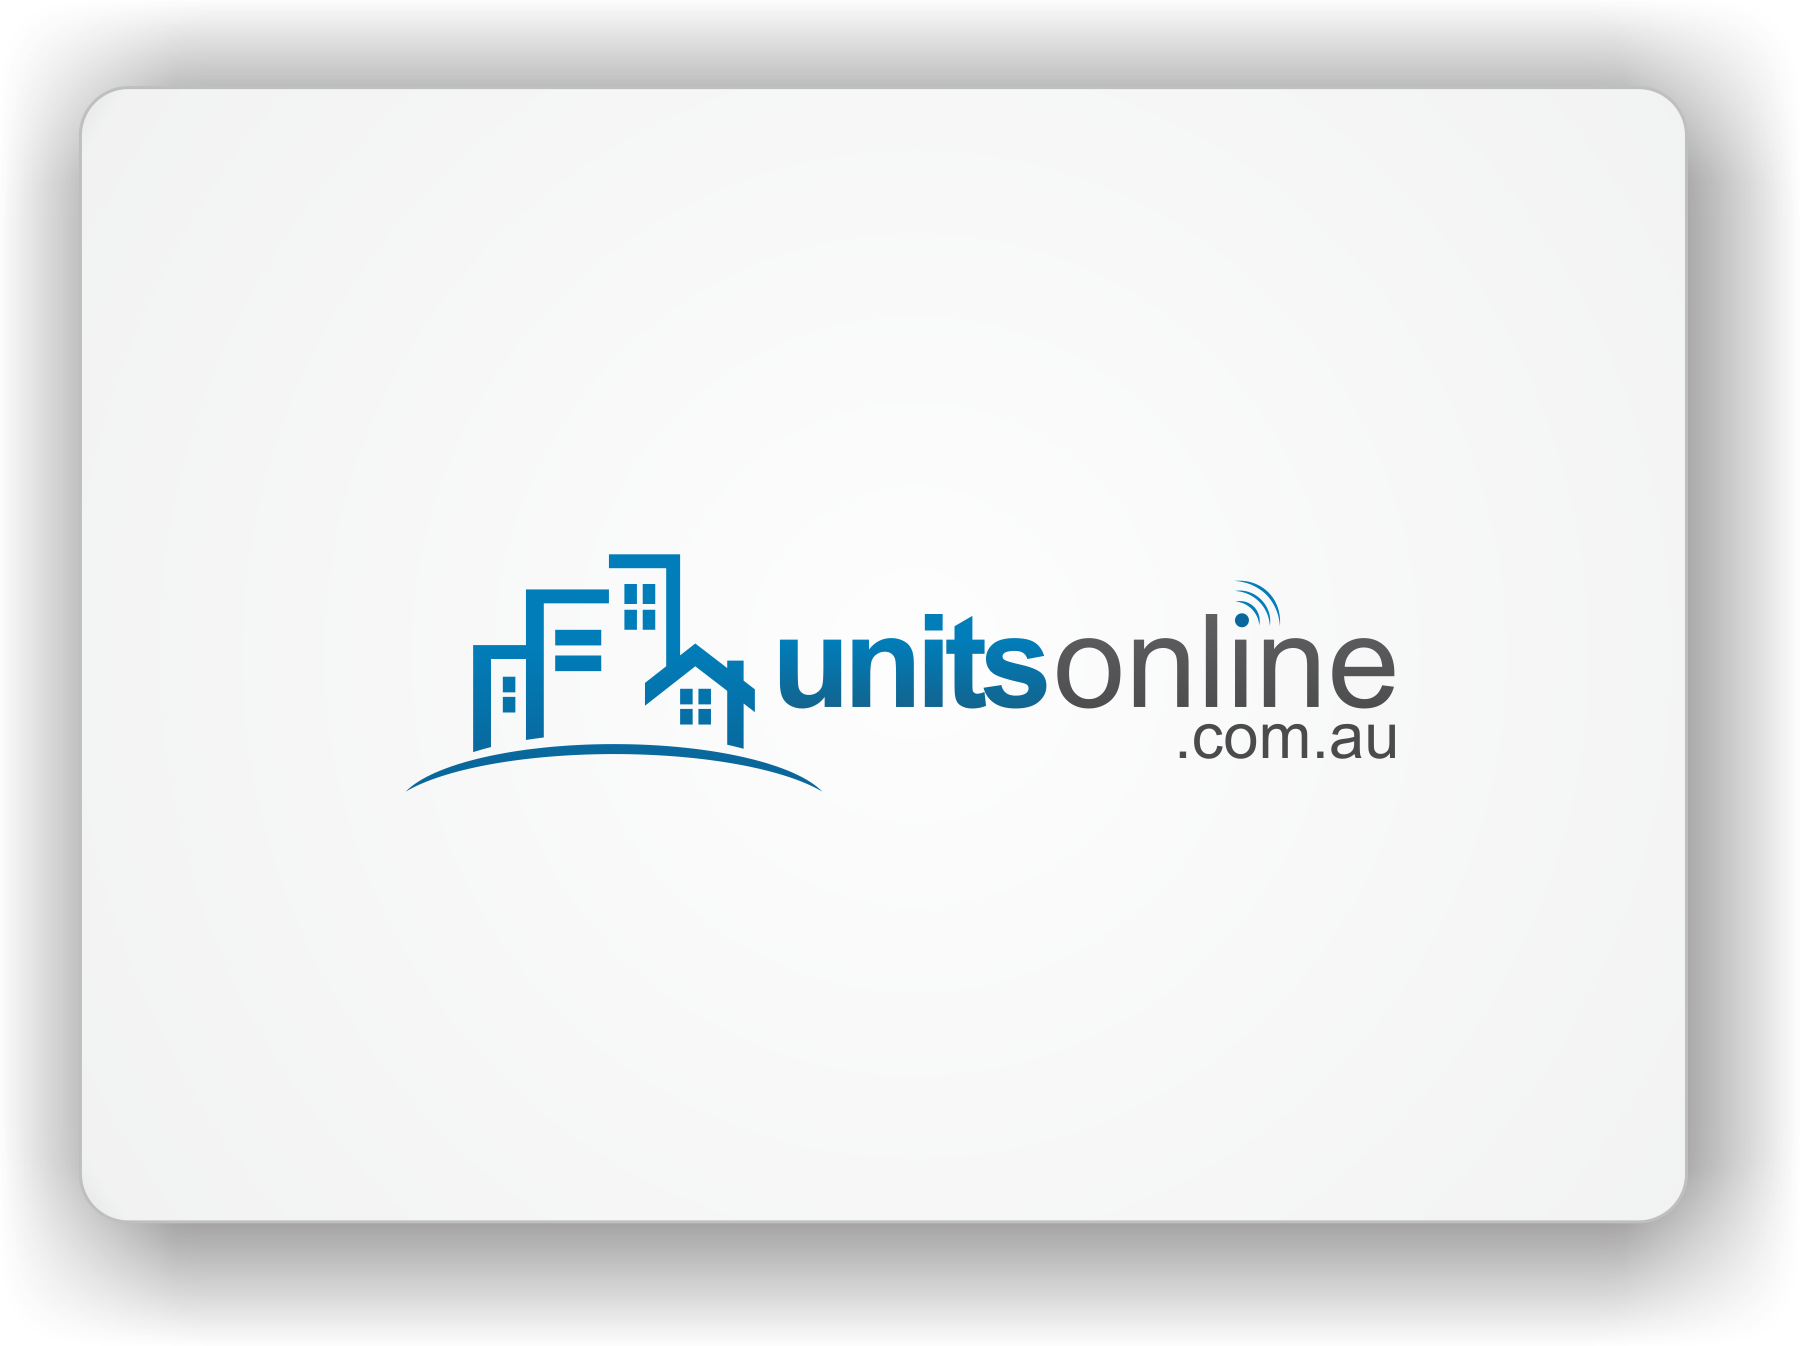 logo for unitsonline.com.au